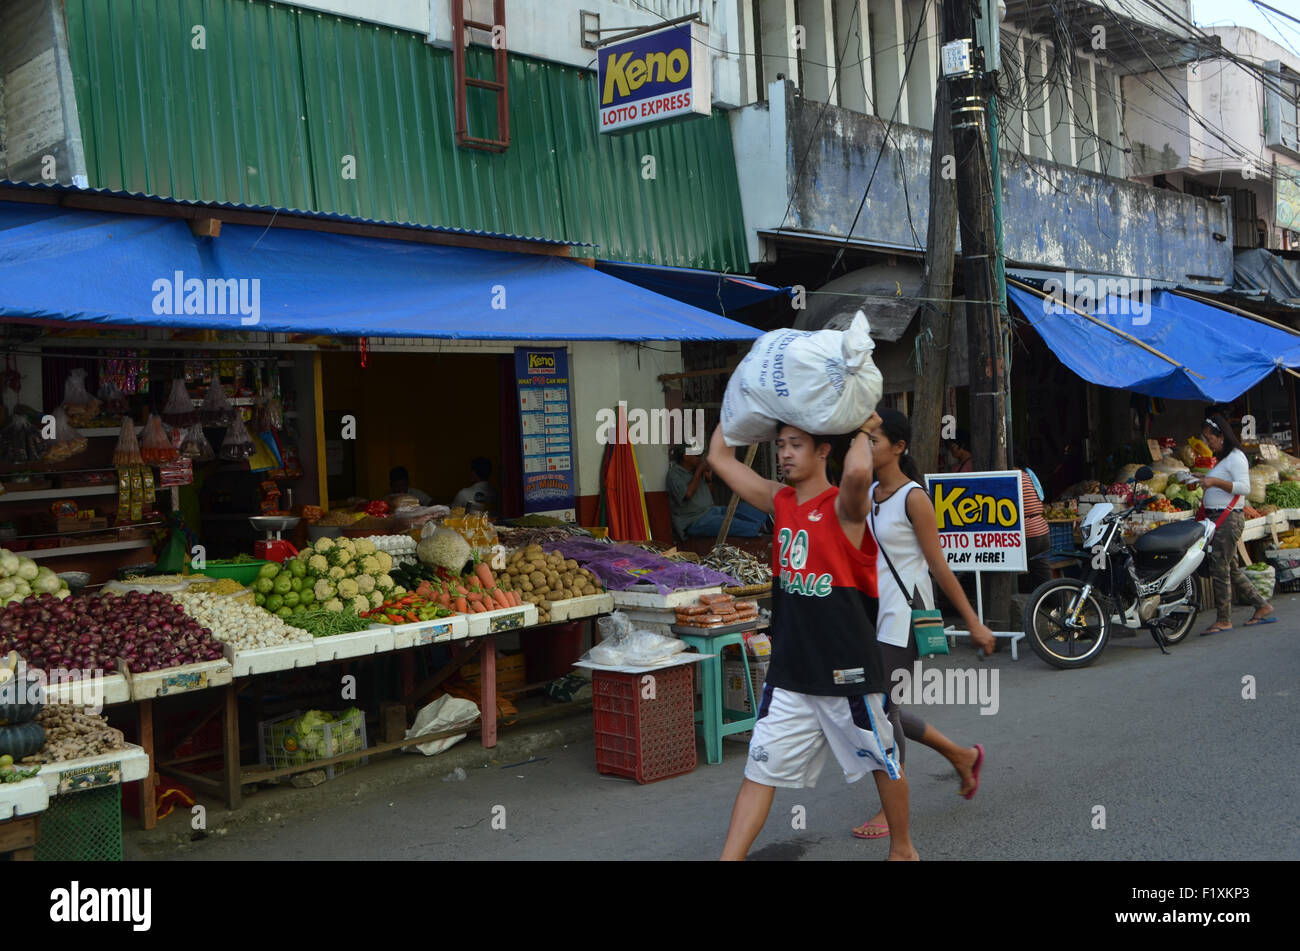 The market place inTugeogharo the northern most state of thePhilippines.Streets stalls selling everything from fresh Stock Photo